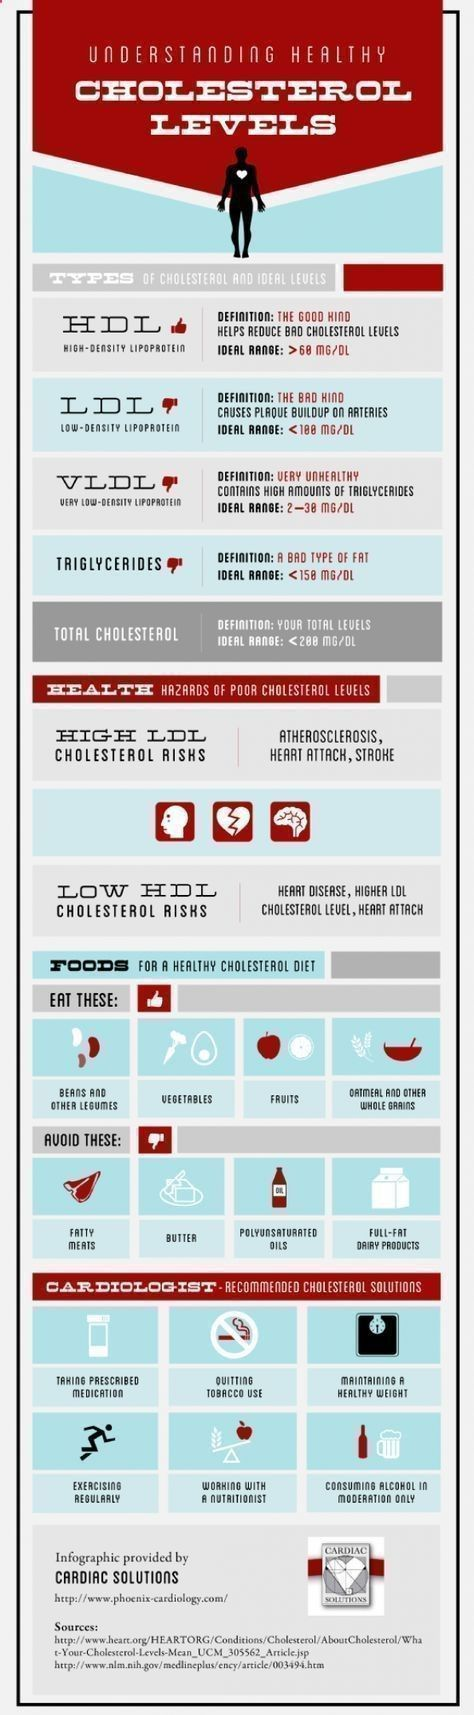 Diet Cholesterol Cure - Many studies show that there is a definite connection between heart disease and cholesterol. Some doctors suggest the intake of statins, a cholesterol-lowering drug for patients with high cholesterol since it one point of cholesterol level drop reduces the risk of heart attack by 2 percent. However, taking statins can cause several side effects like liver damage, muscle pain, fatigue and other. So we listed the 5 natural ways of lowering your cholesterol natural...